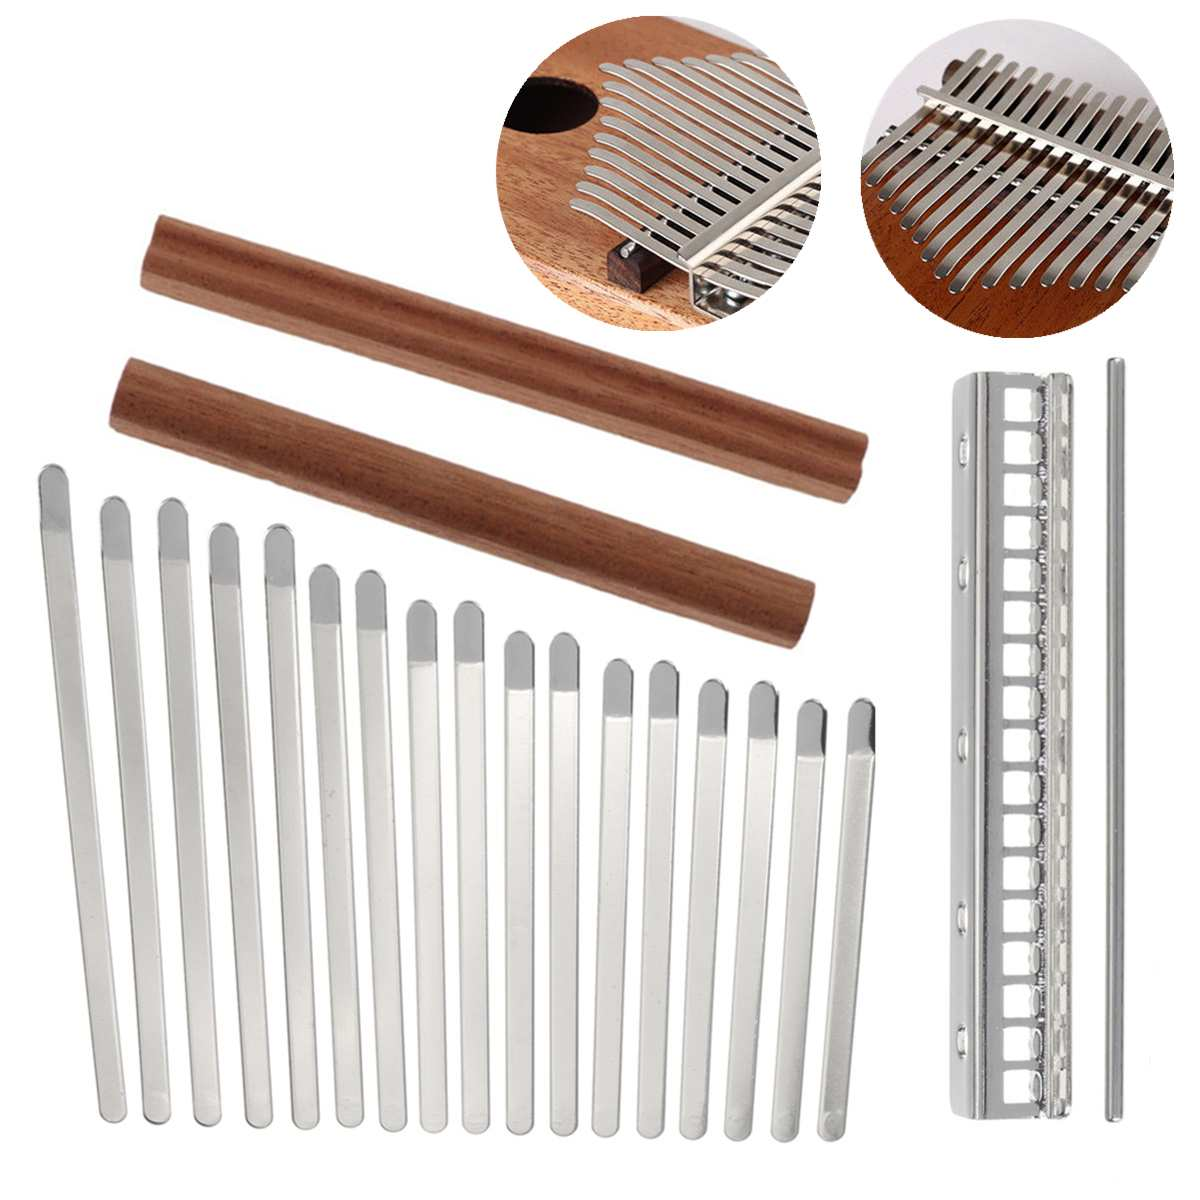 DIY 17 Key Steel Keys Bridge Thumb Piano  Kalimba Mbira  Music Replacement Parts Accessories